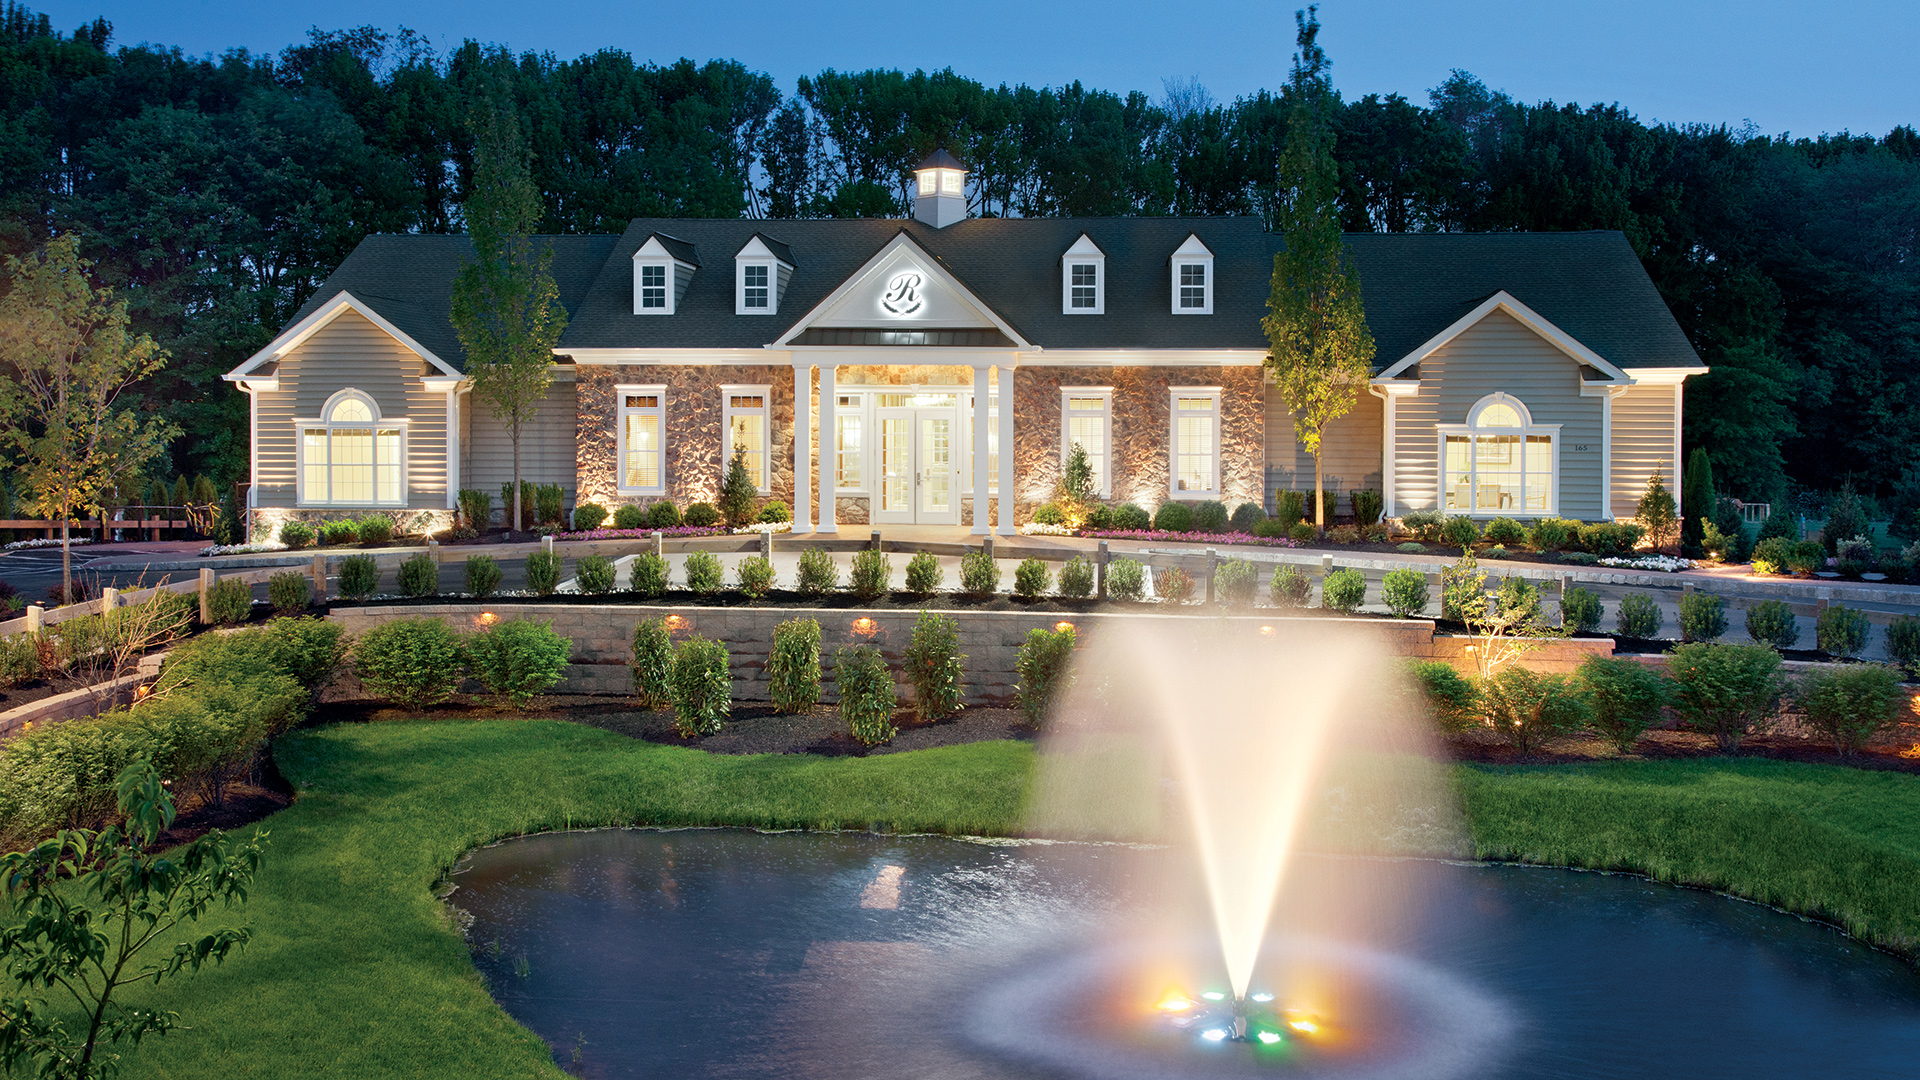 The Clubhouse at Regency at Yardley